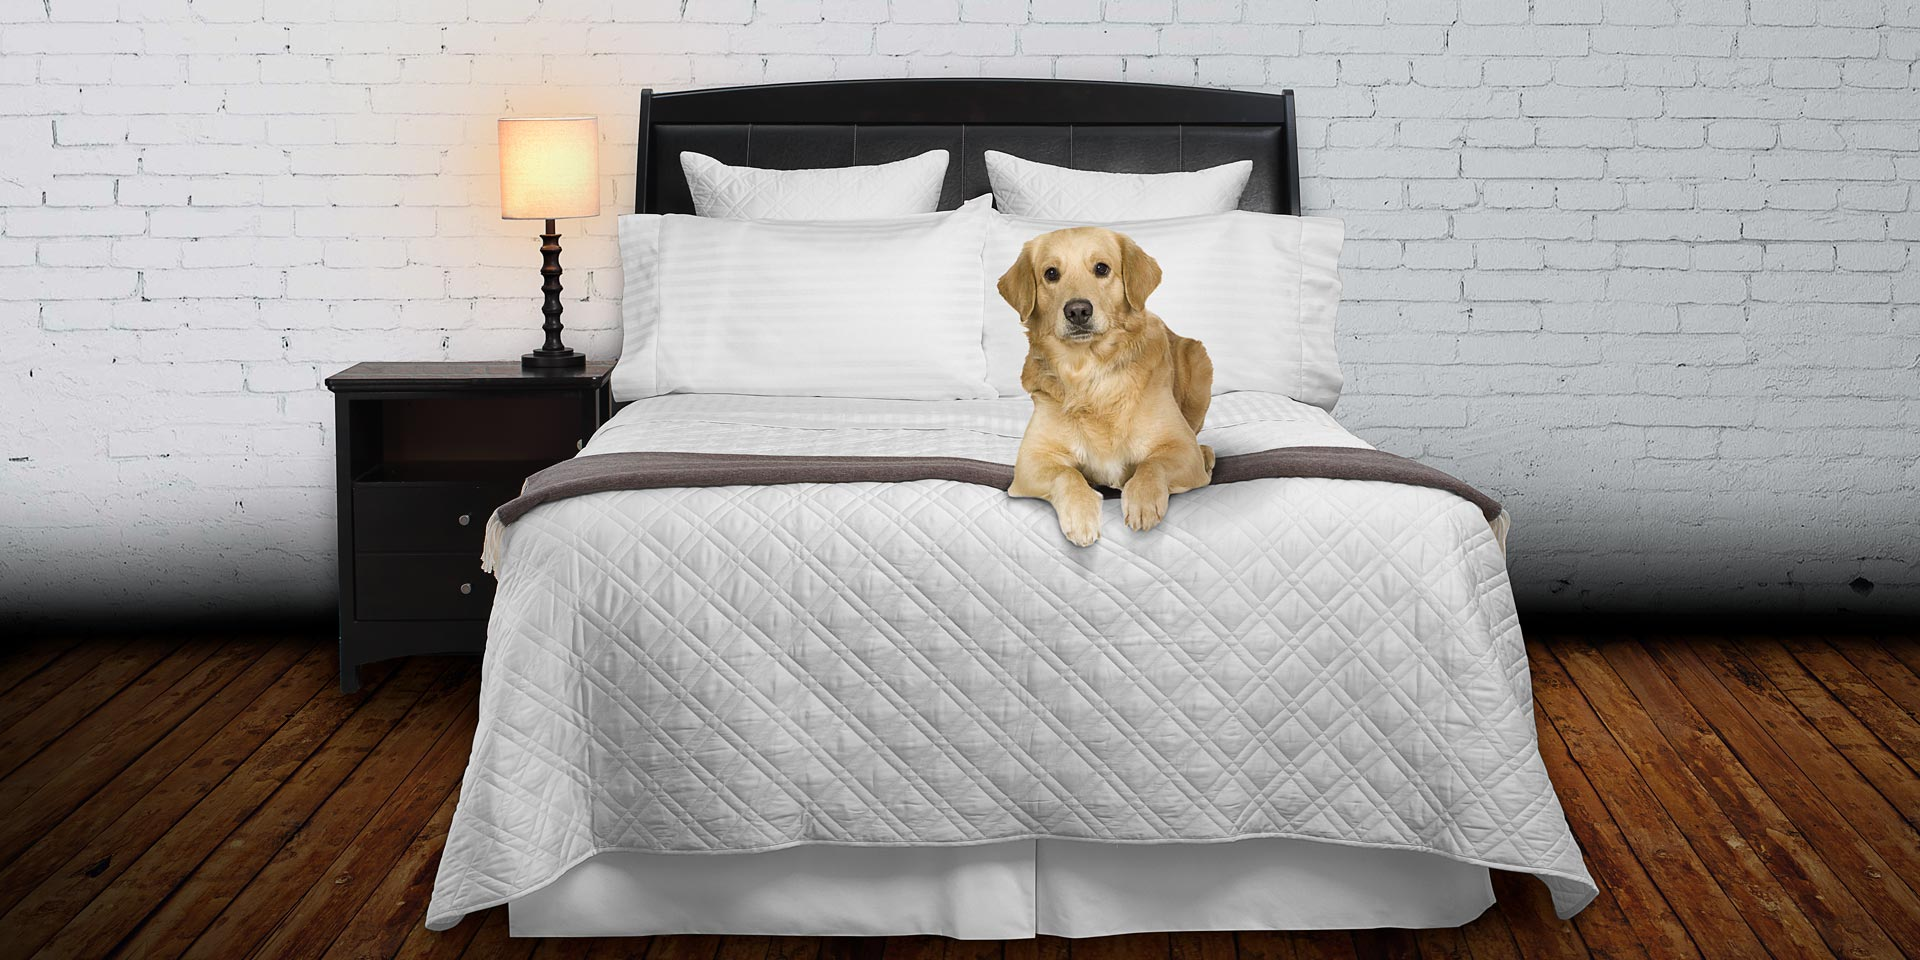 Sleep in the finest luxury Italian bed linens & sheets